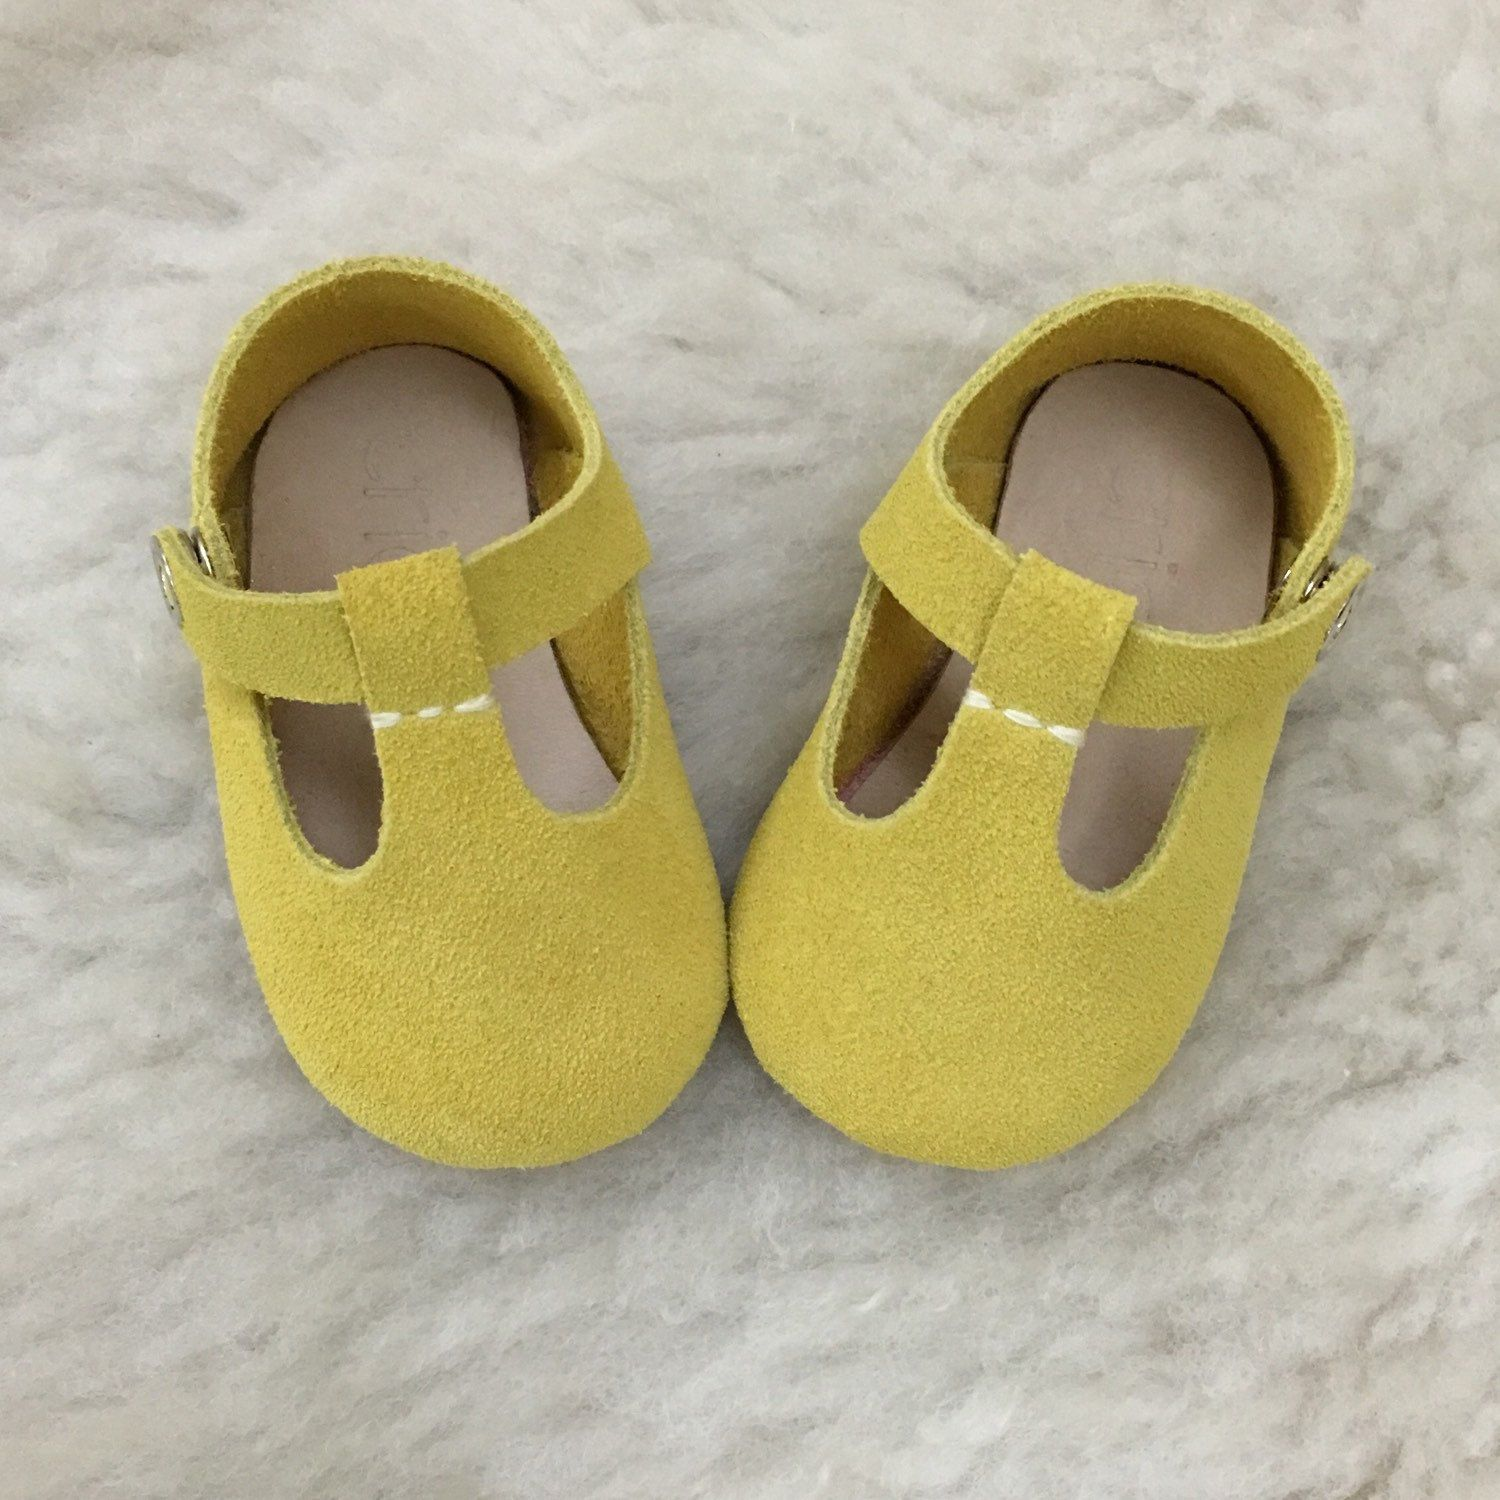 29d8d75683144 Mustard Baby Girl Shoes, Baby Moccasins, Yellow Leather Mary Jane T ...